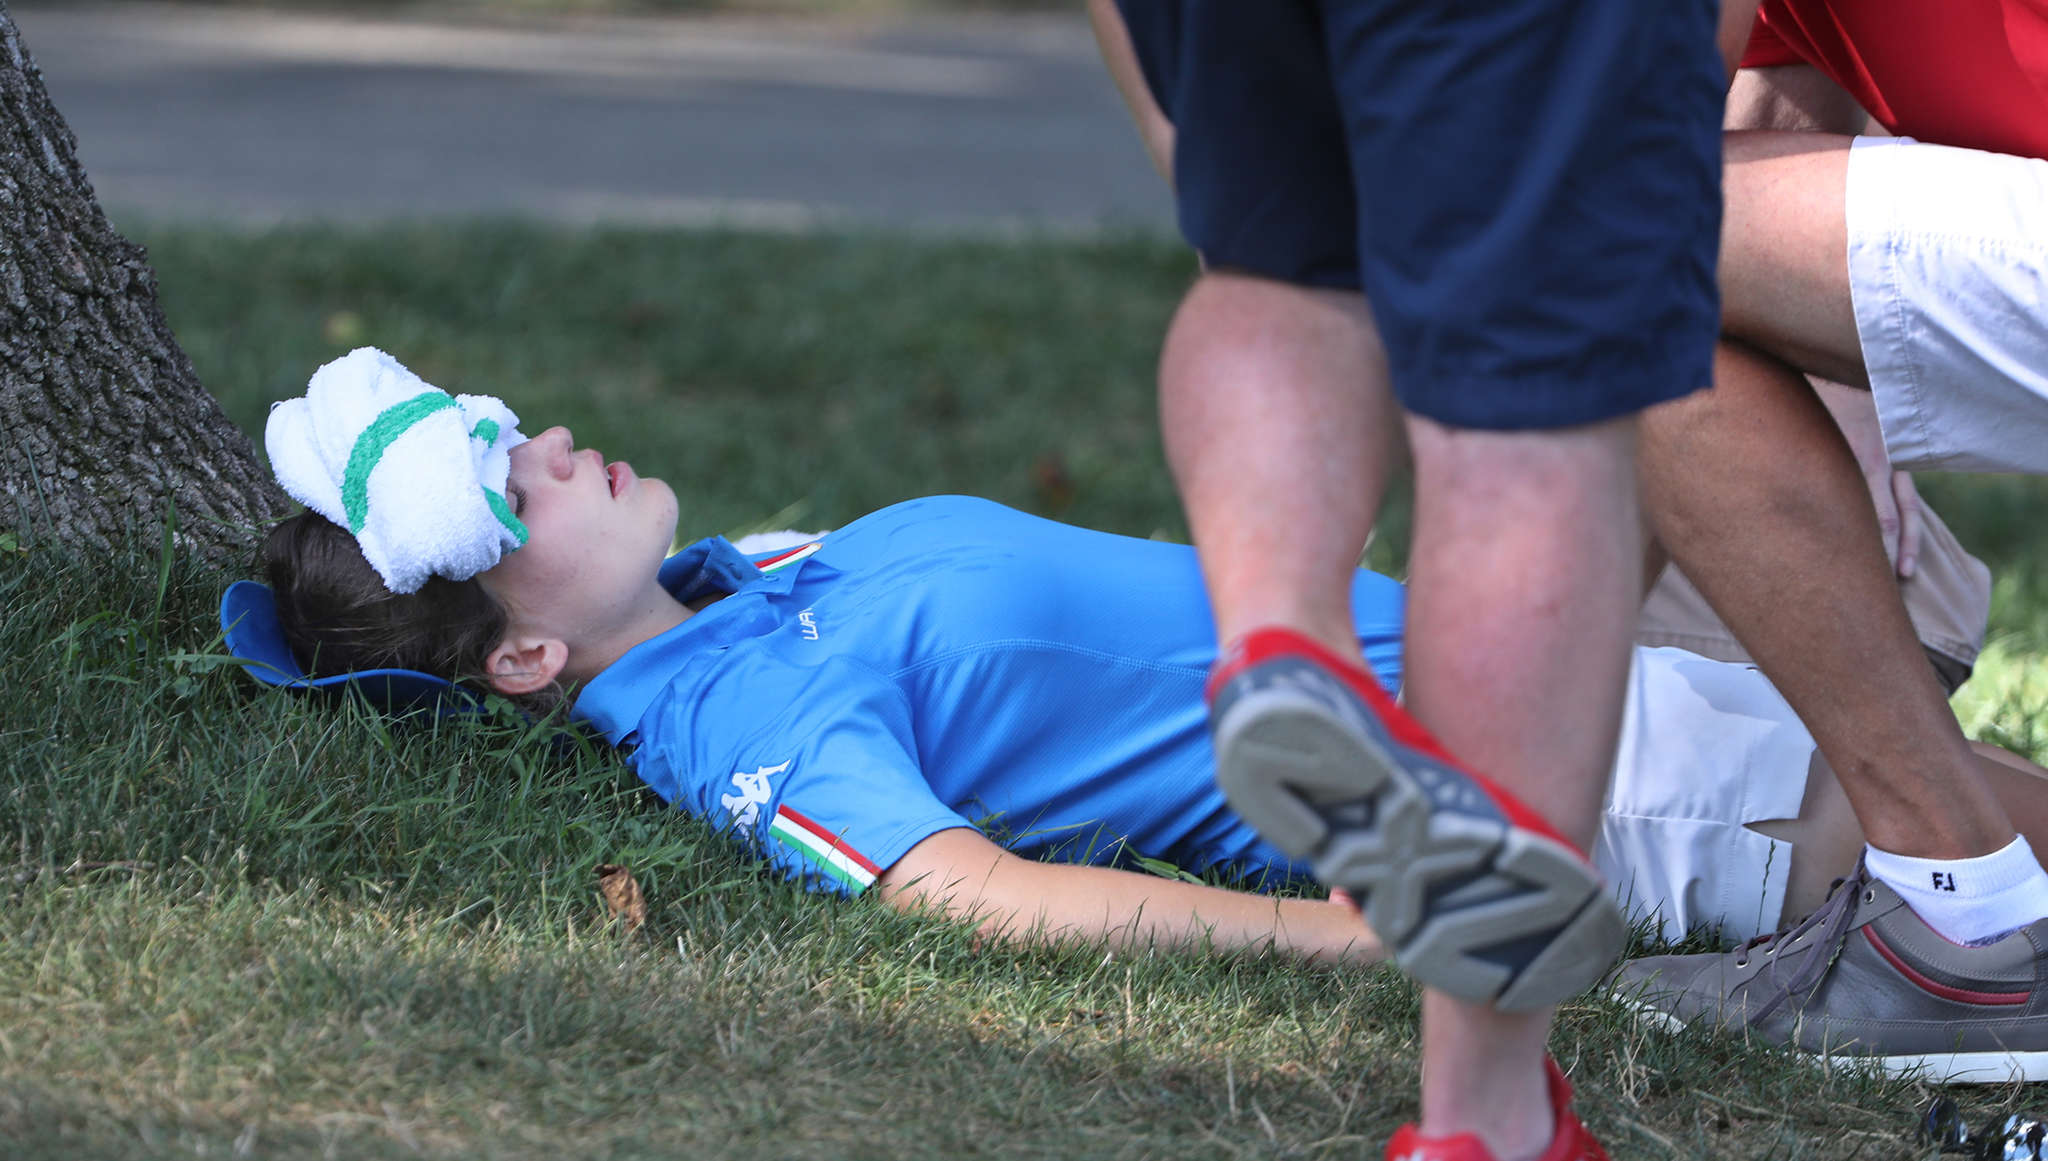 Virginia Elena Carta is overcome by heat and rests after the 13th hole. MICHAEL BRYANT /Staff Photographer